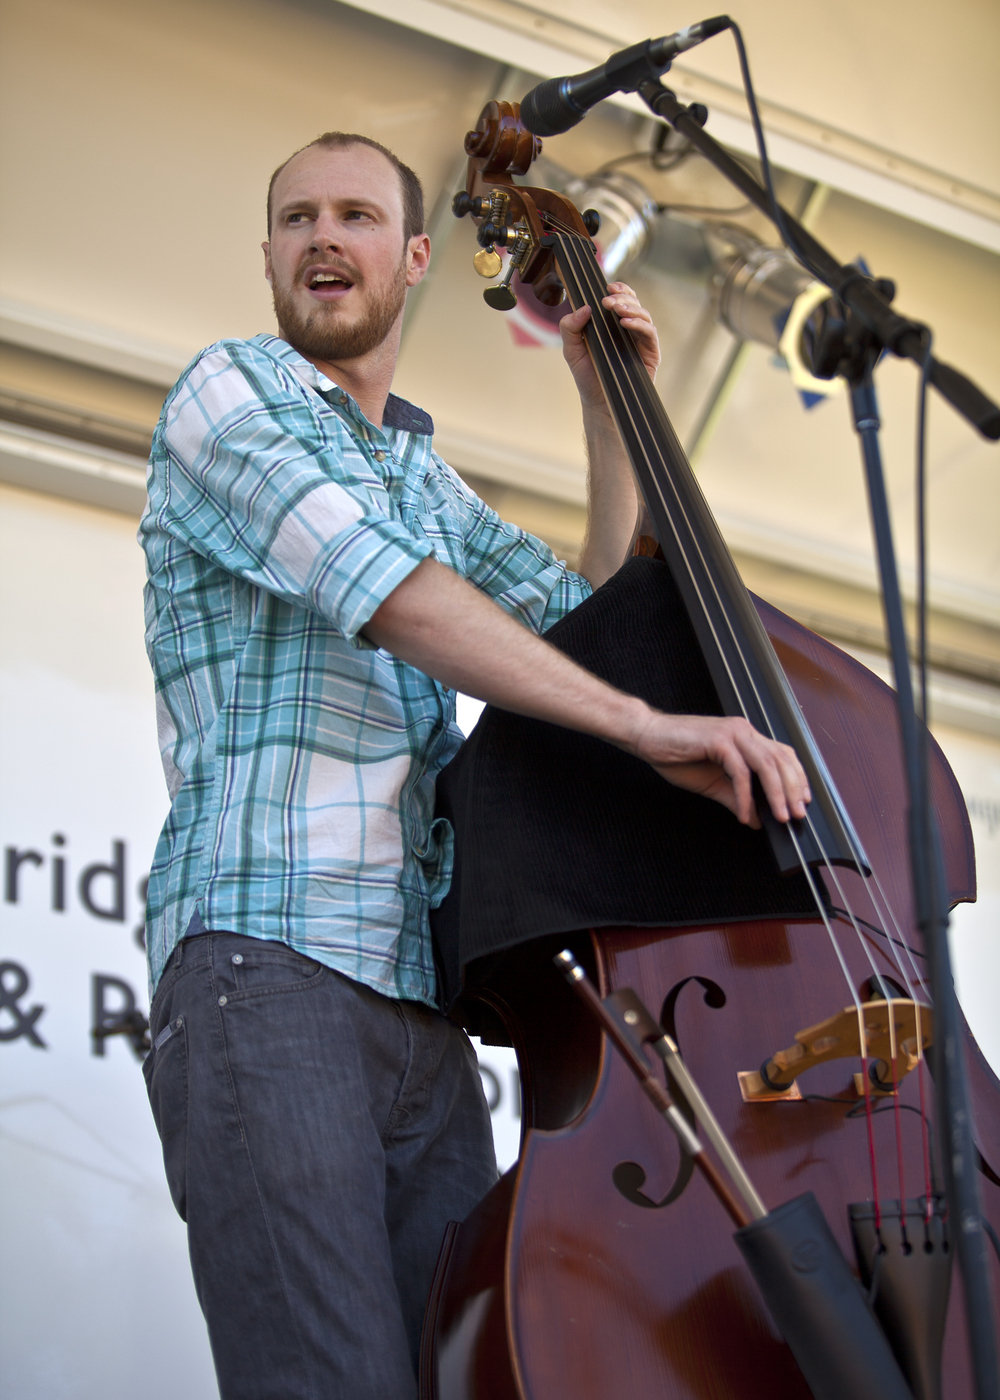 Andrew Knapp, bass player of the Warren G. Hardings, at the 2013 Bainbridge Island Bluegrass Festival.